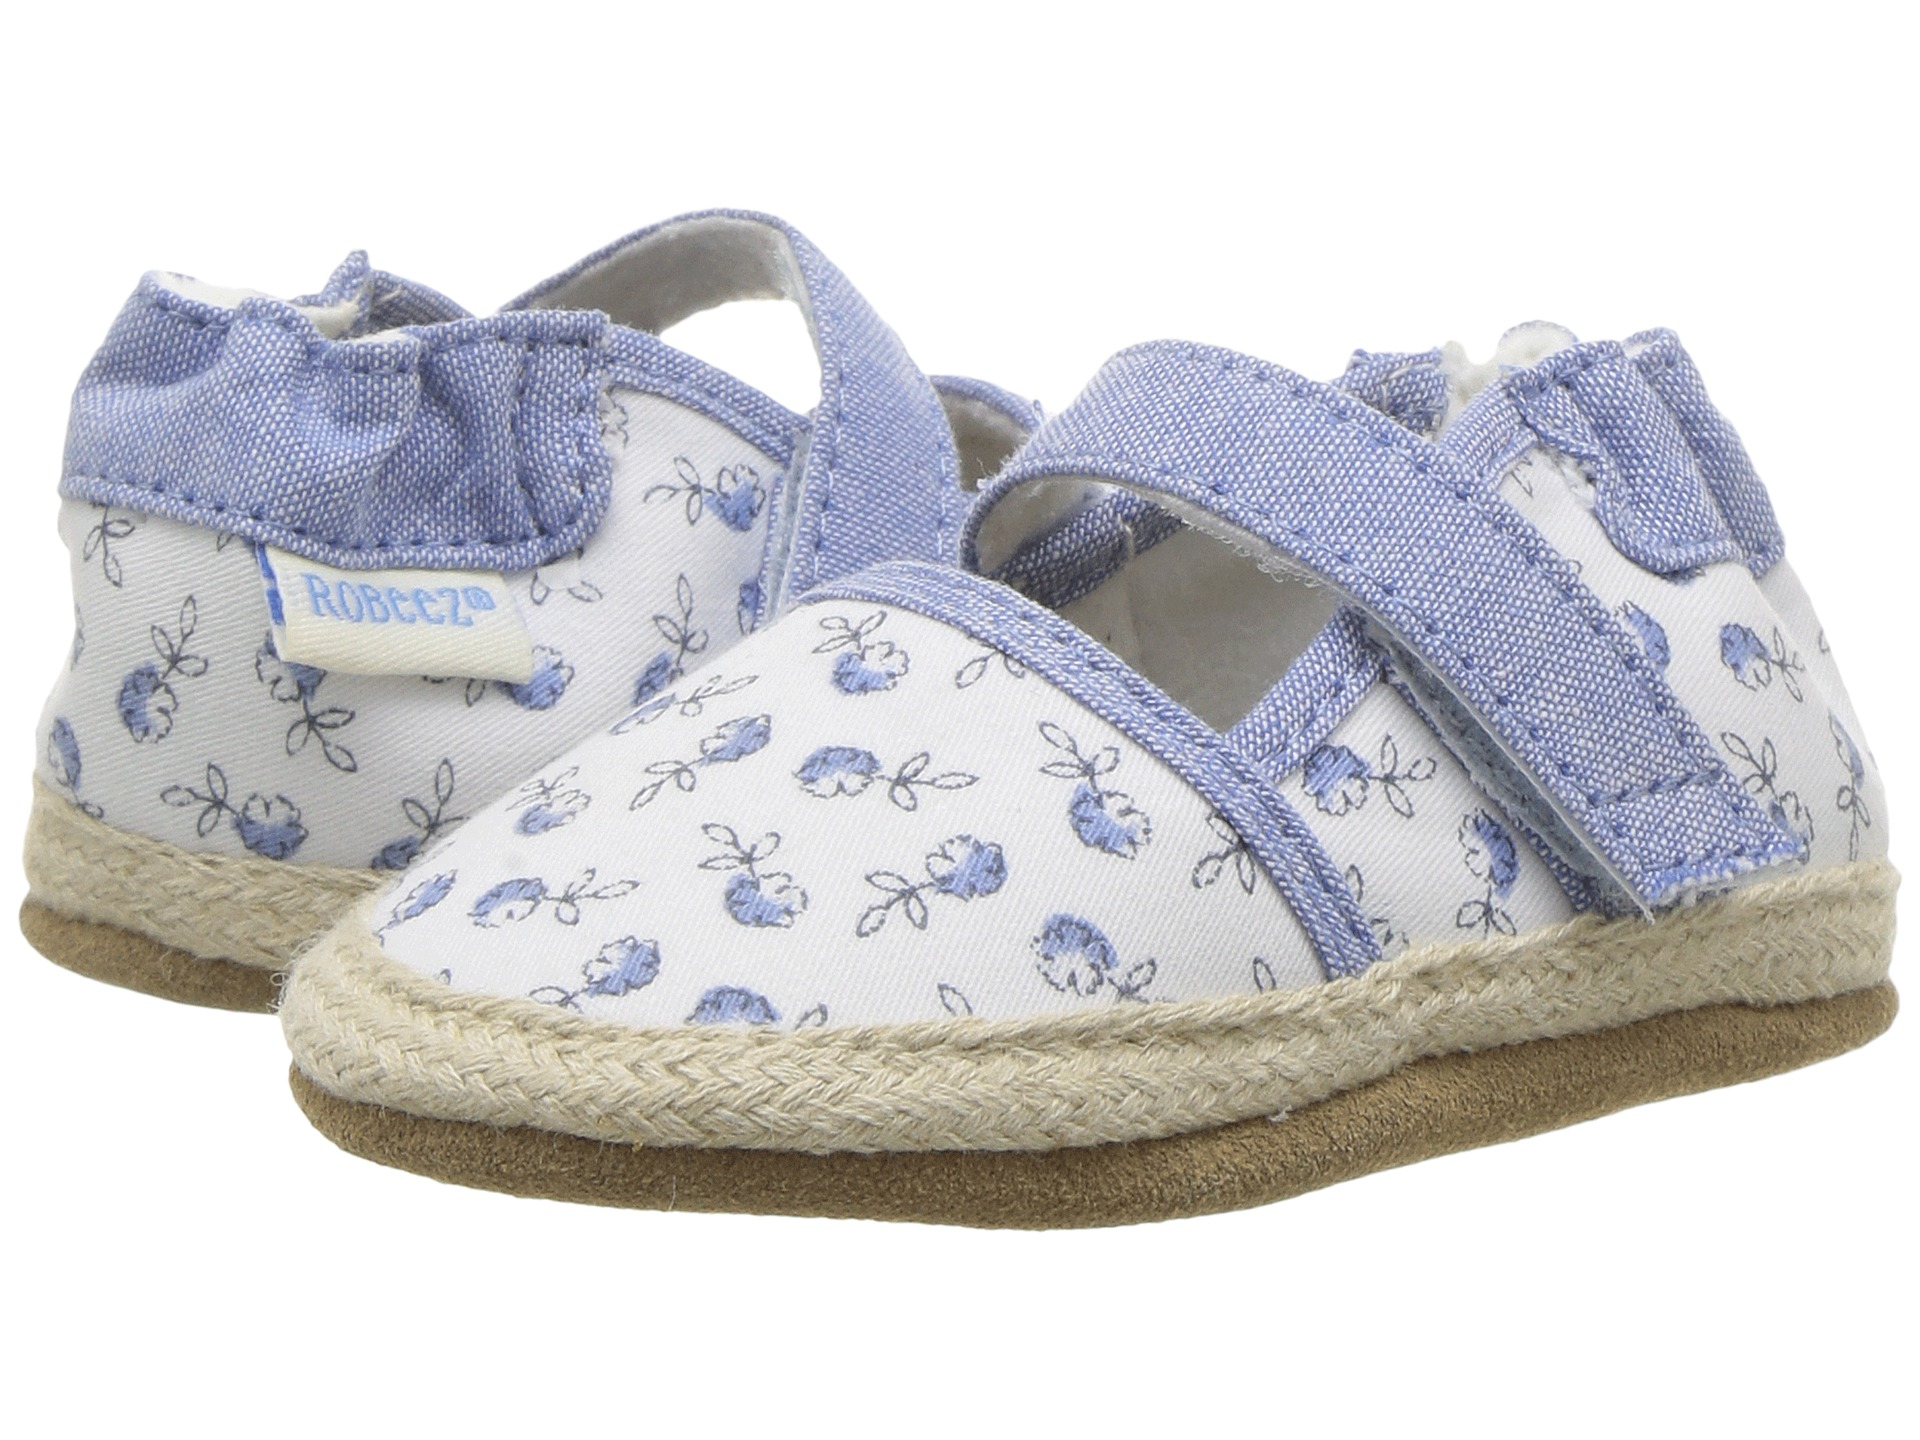 matches. ($ - $) Find great deals on the latest styles of Robeez shoe. Compare prices & save money on Baby & Kids' Shoes.